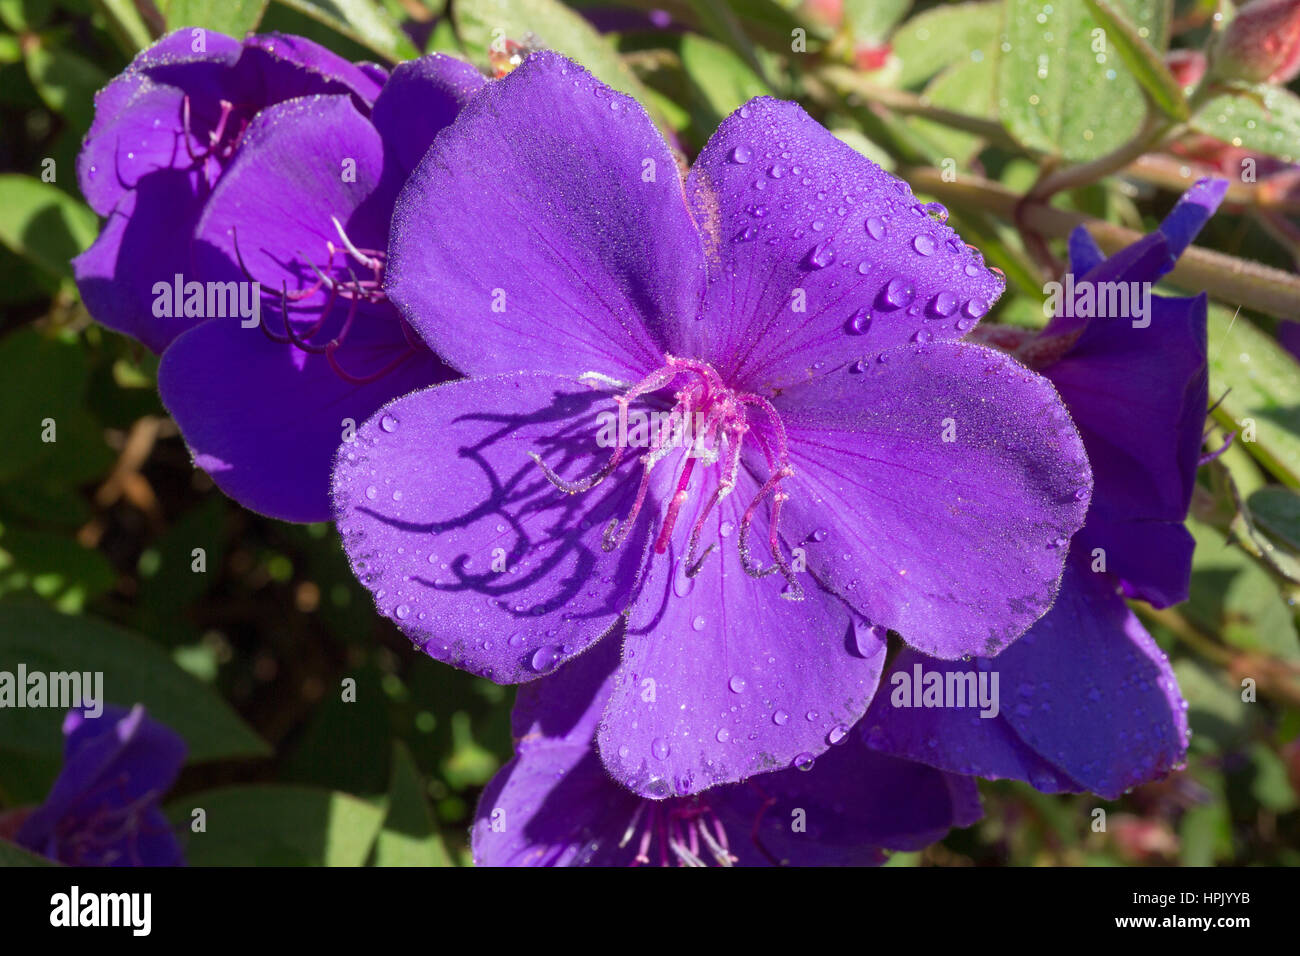 Greymouth, West Coast, New Zealand. Brilliant purple flowers of a glory bush (Tibouchina urvilleana) covered in - Stock Image